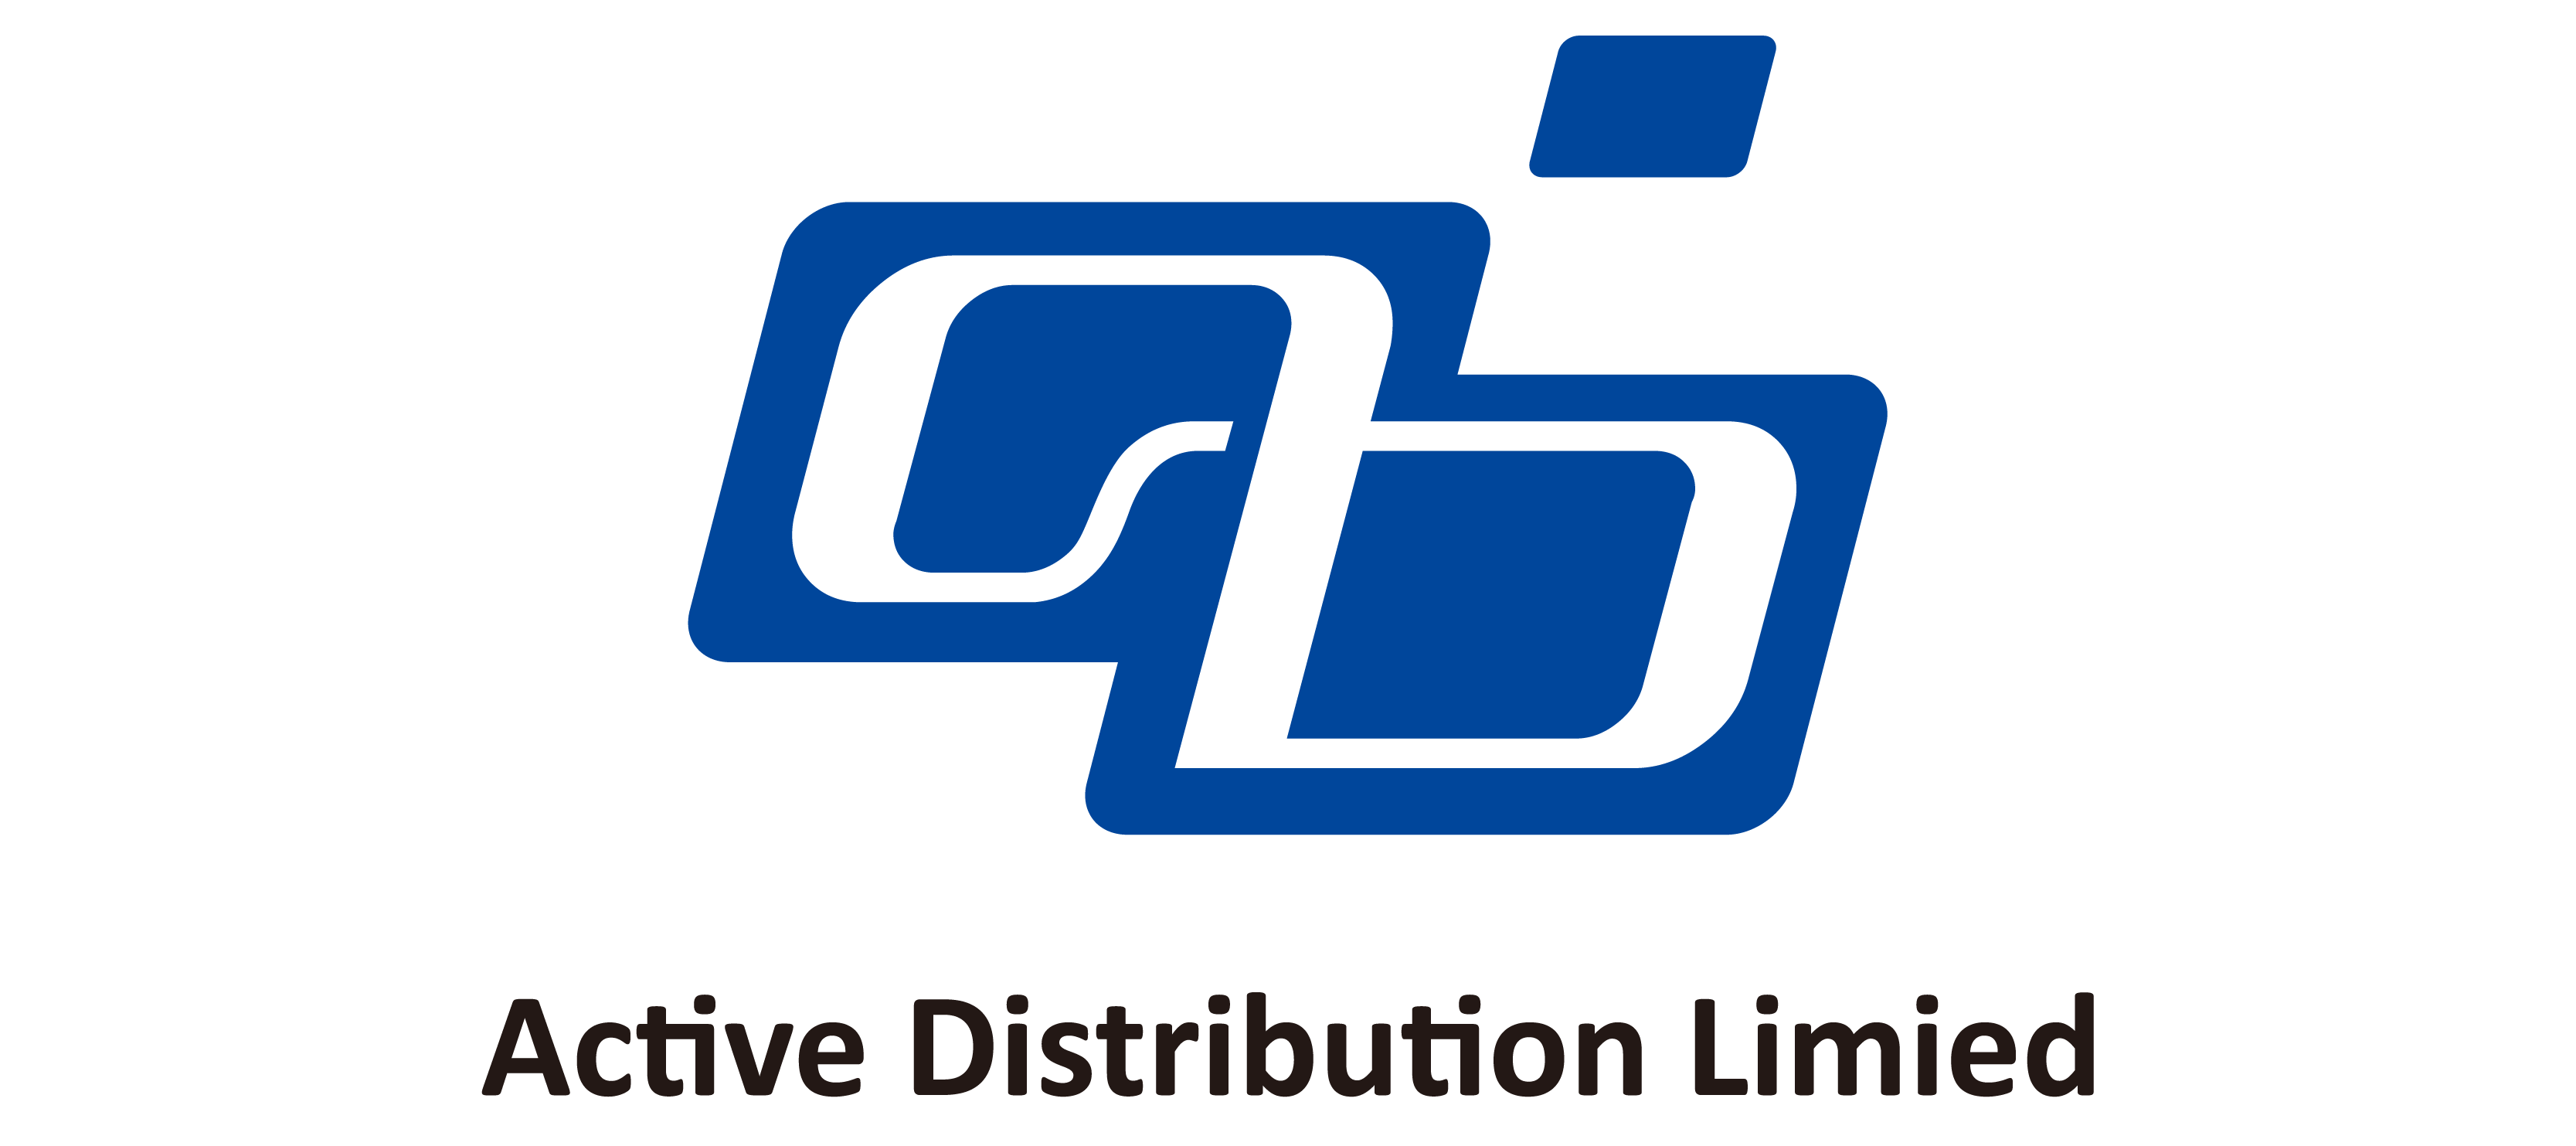 Active Distribution Ltd.